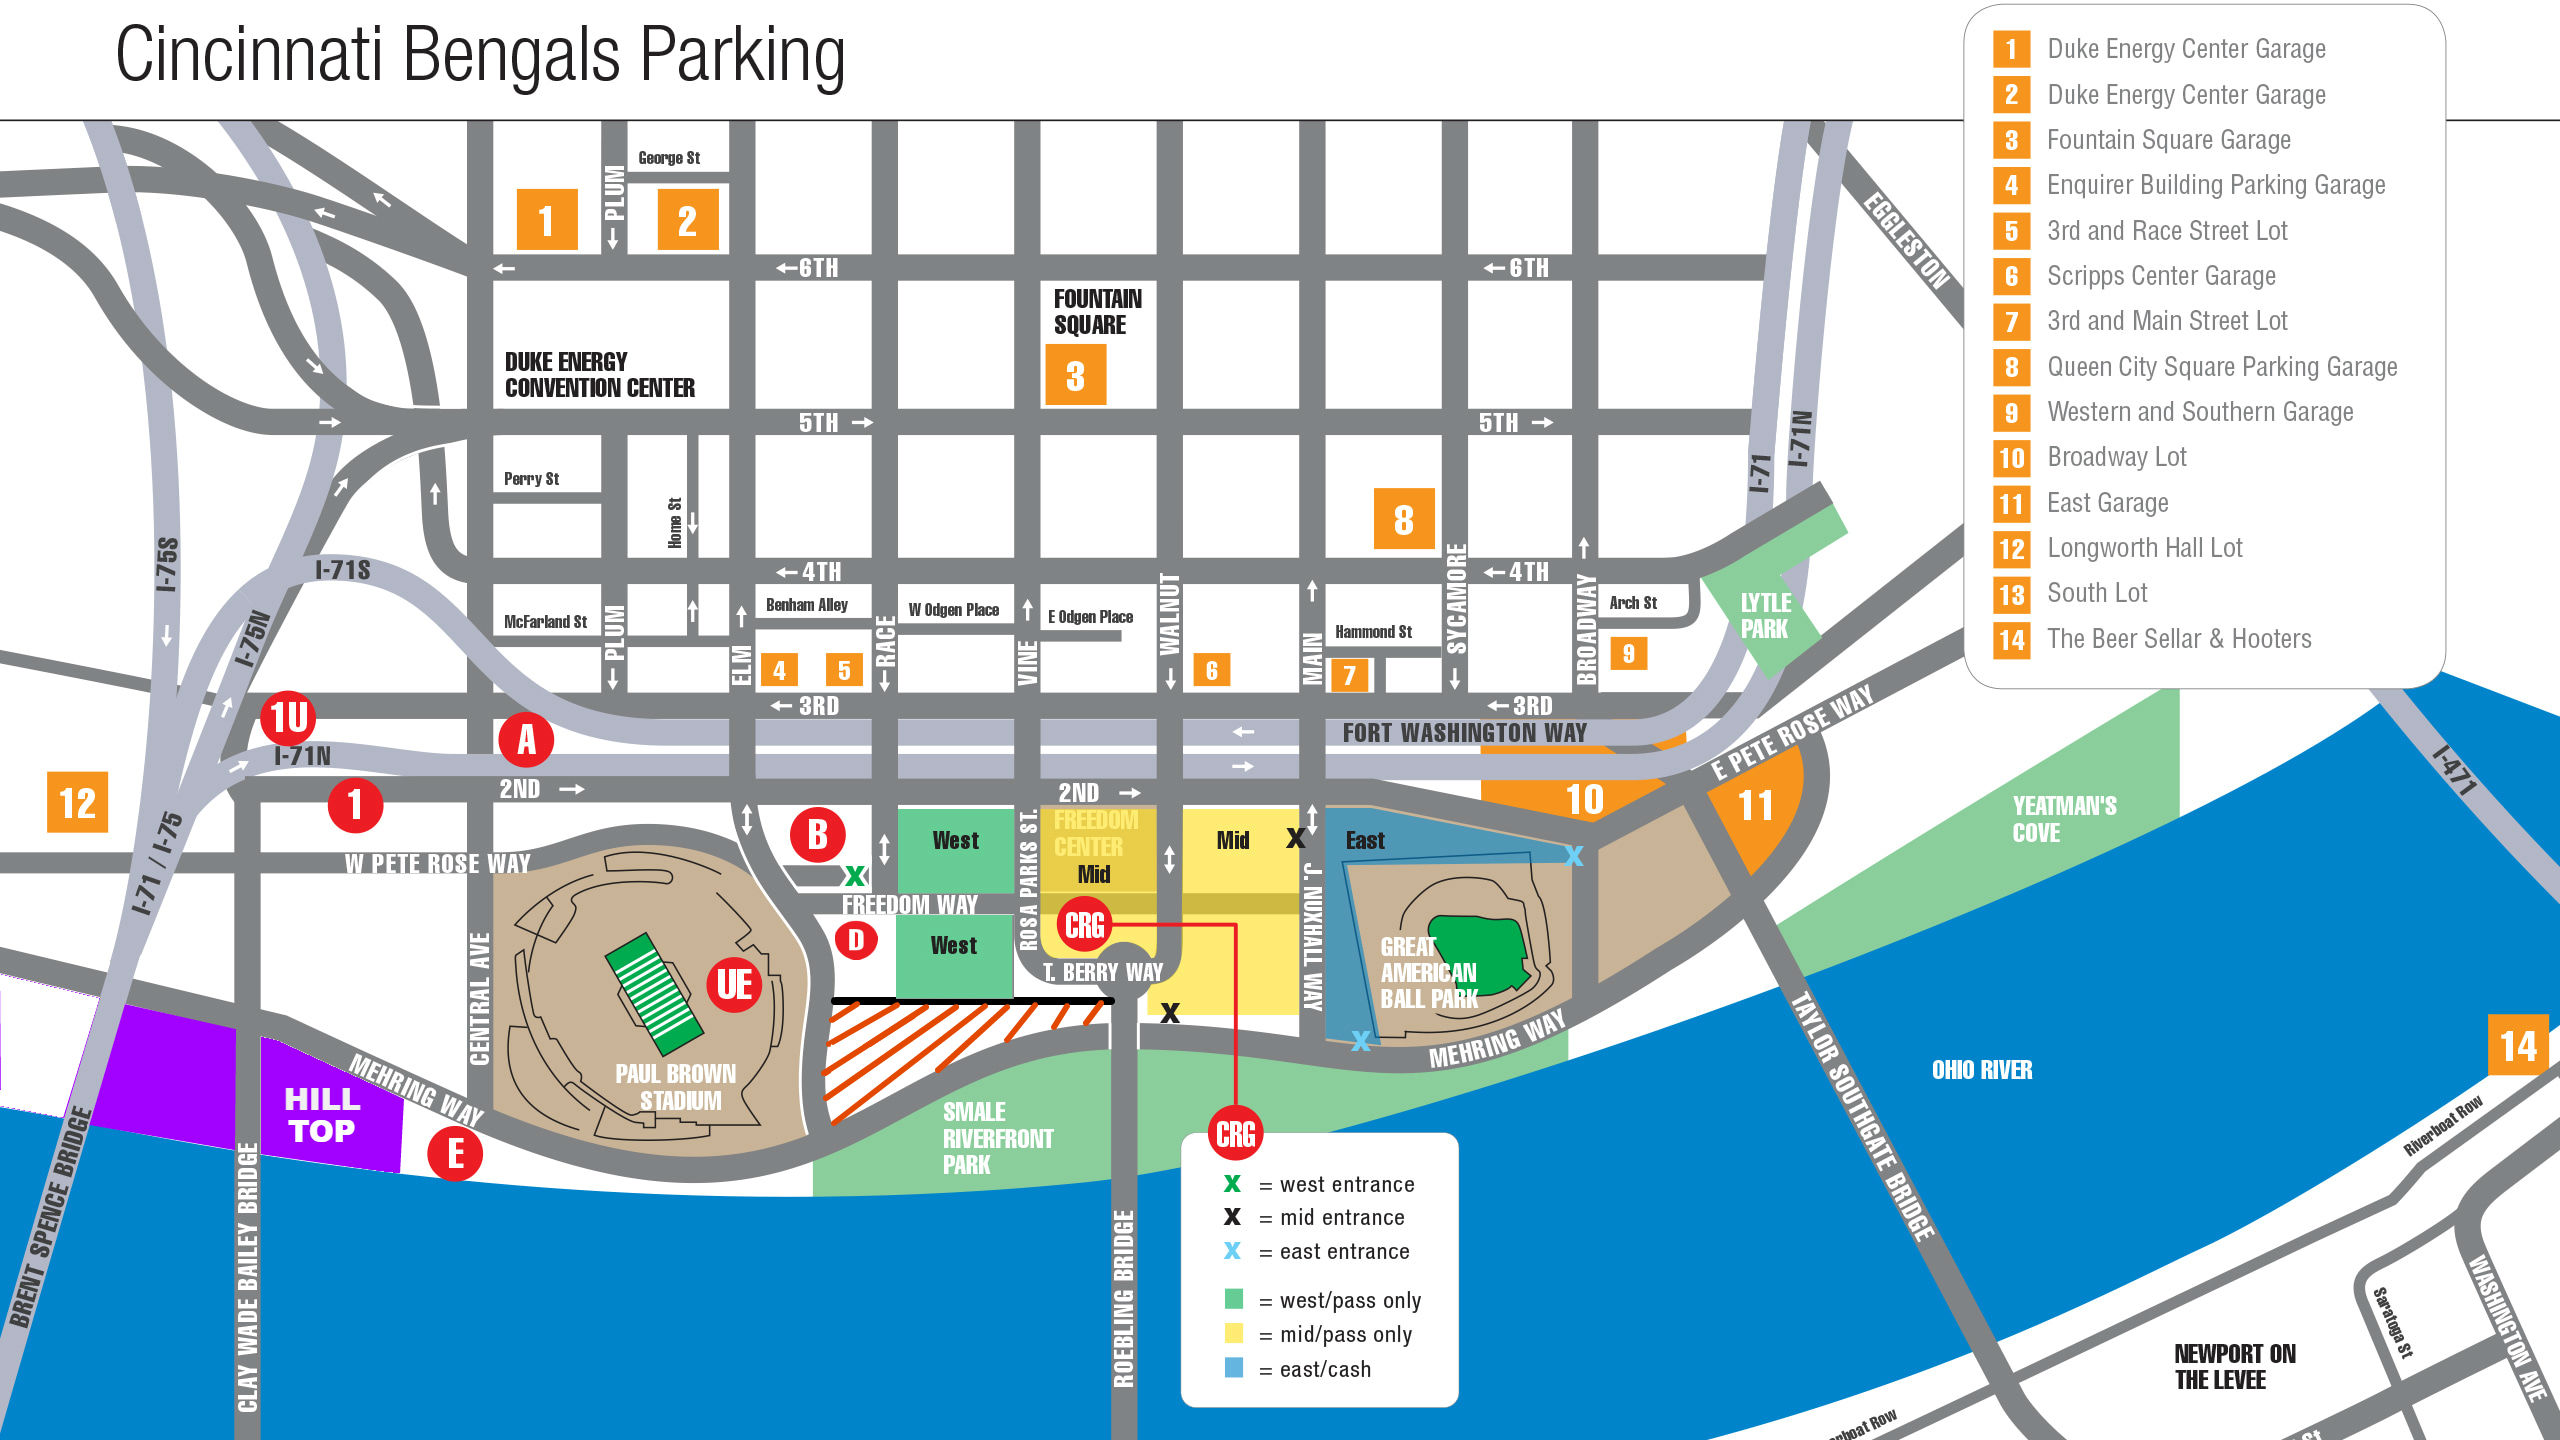 Cincinnati Bengals Stadium | Paul Brown Stadium - Bengals.com on cincinnati reds field map, cincinnati reds program, cincinnati reds rosie, cincinnati reds team, cincinnati reds logo 2012, cincinnati reds hall of fame, cincinnati reds players, cincinnati reds mustache, cincinnati reds artwork, cincinnati reds promotions, great american ballpark map, cincinnati reds c logo, cincinnati reds ticket prices, cincinnati bengals stadium map, cincinnati reds mr. red, cincinnati reds symbol, cincinnati reds nasty boys, cincinnati reds 2015,